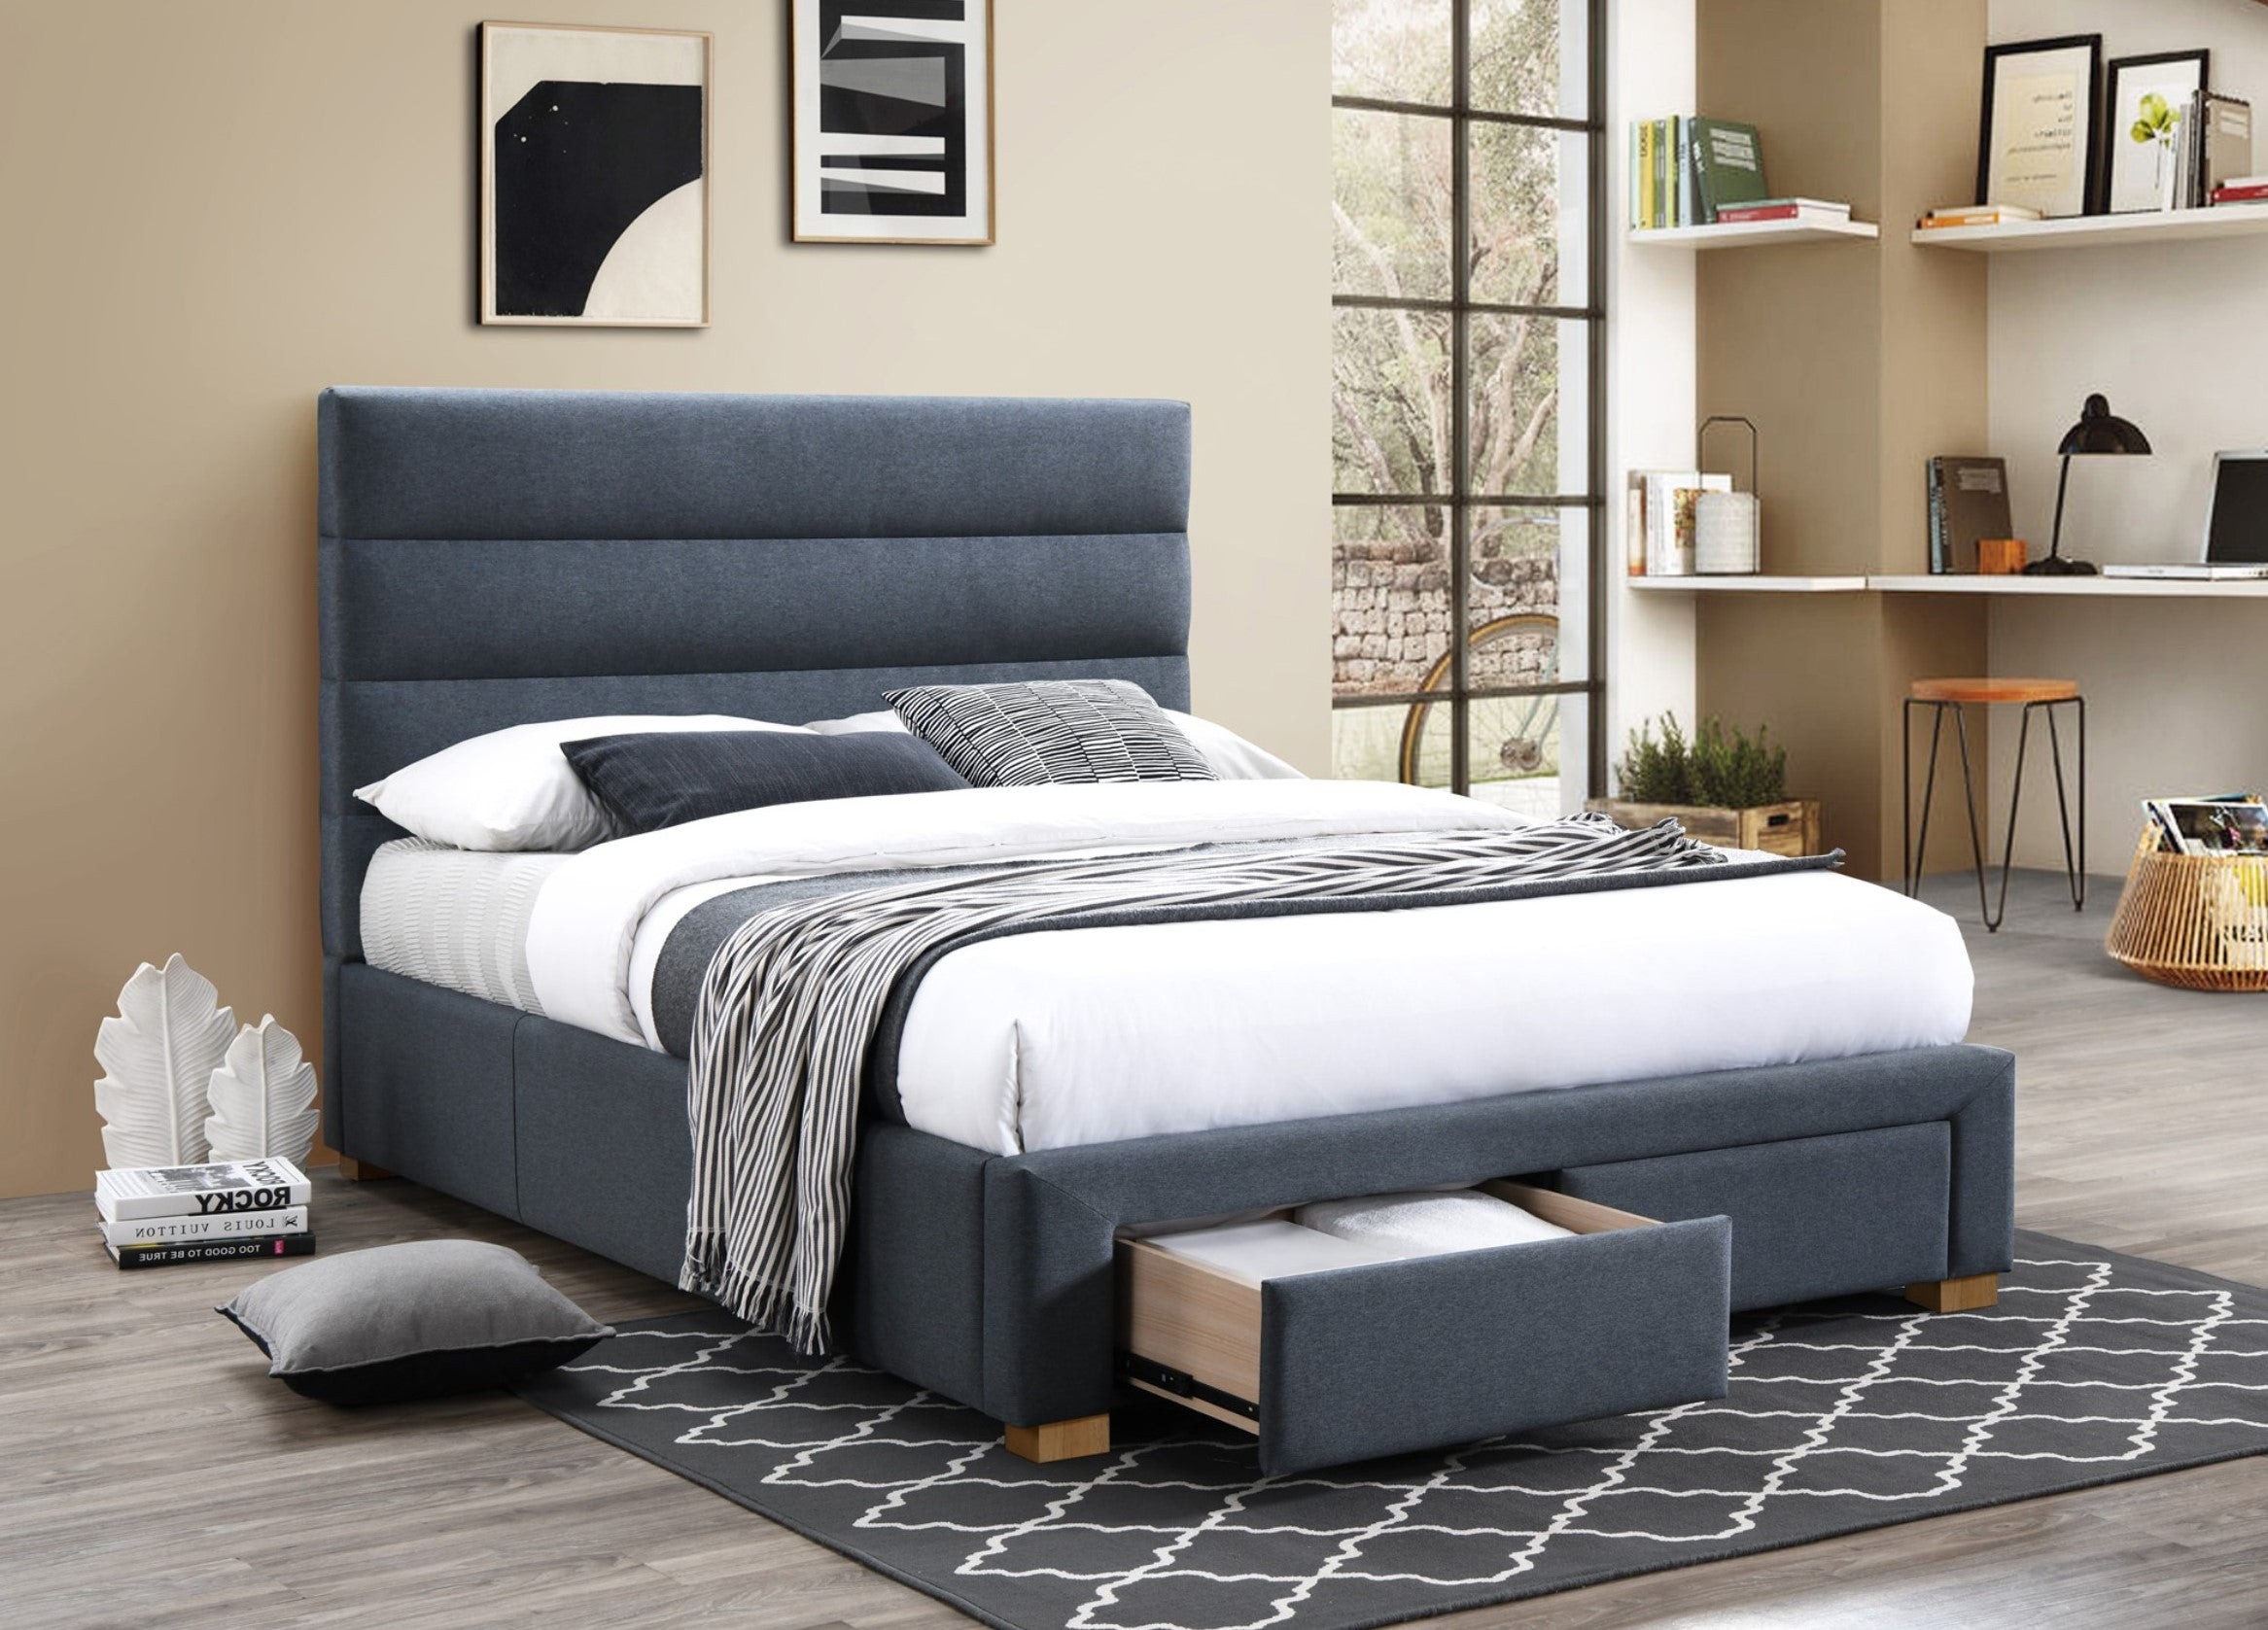 Alana Upholstered bed with Drawers